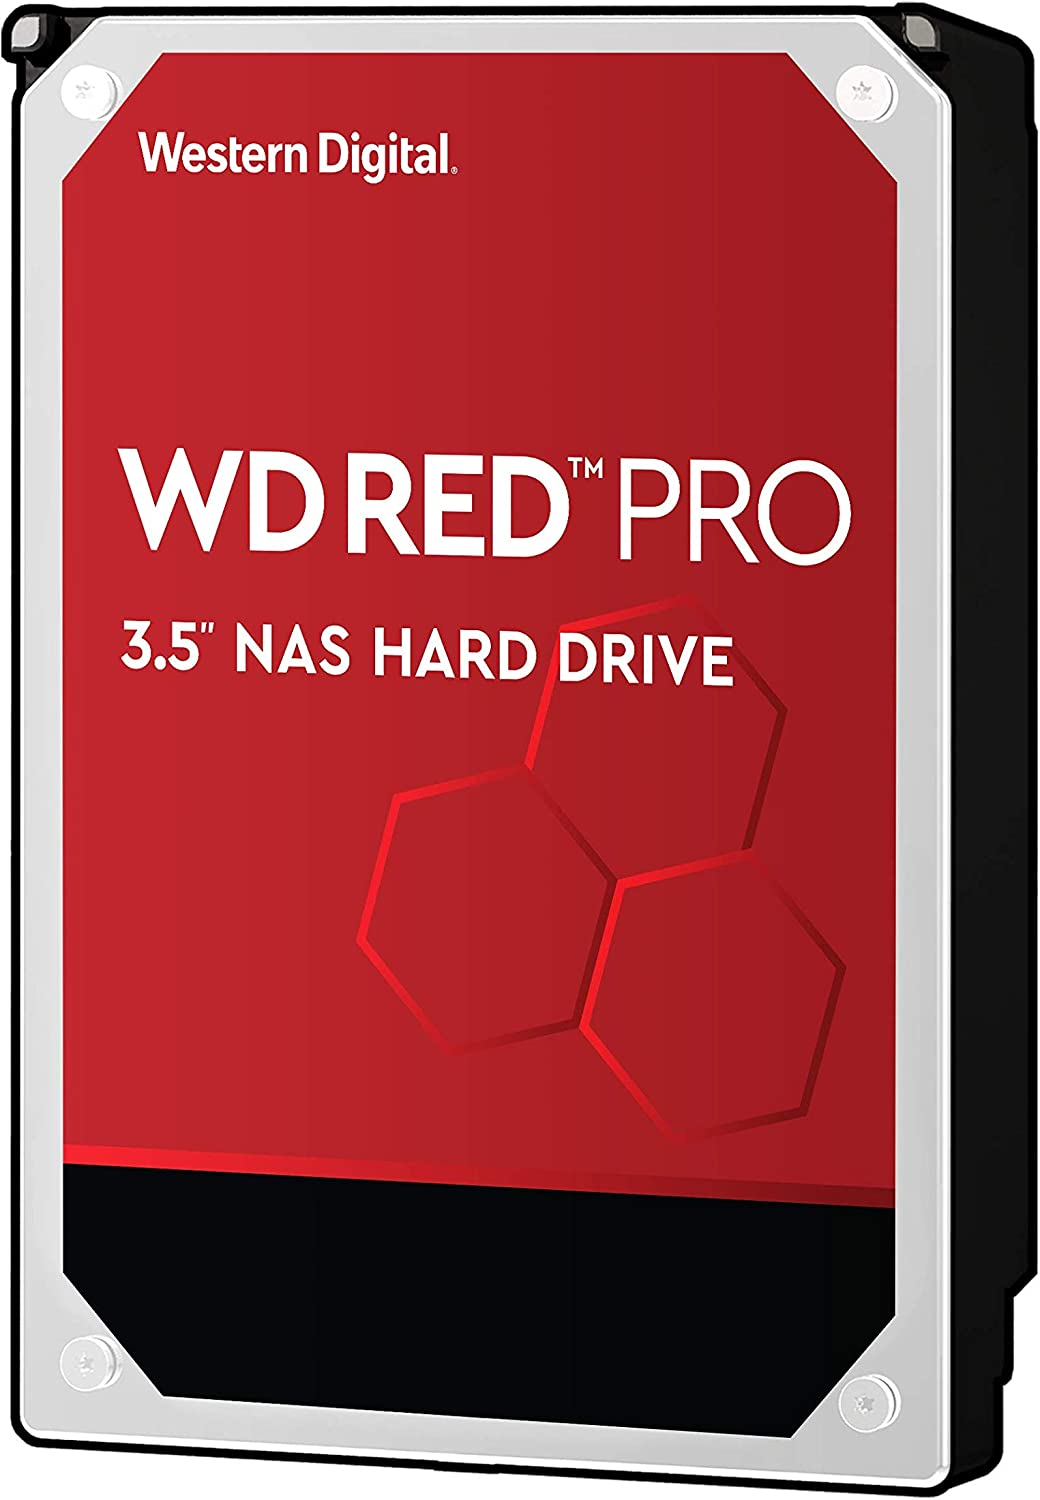 "WD Red Pro 4TB NAS Internal Hard Drive - 7200 RPM Class, SATA 6 Gb/s, 256 MB Cache, 3.5"" - WD4003FFBX"